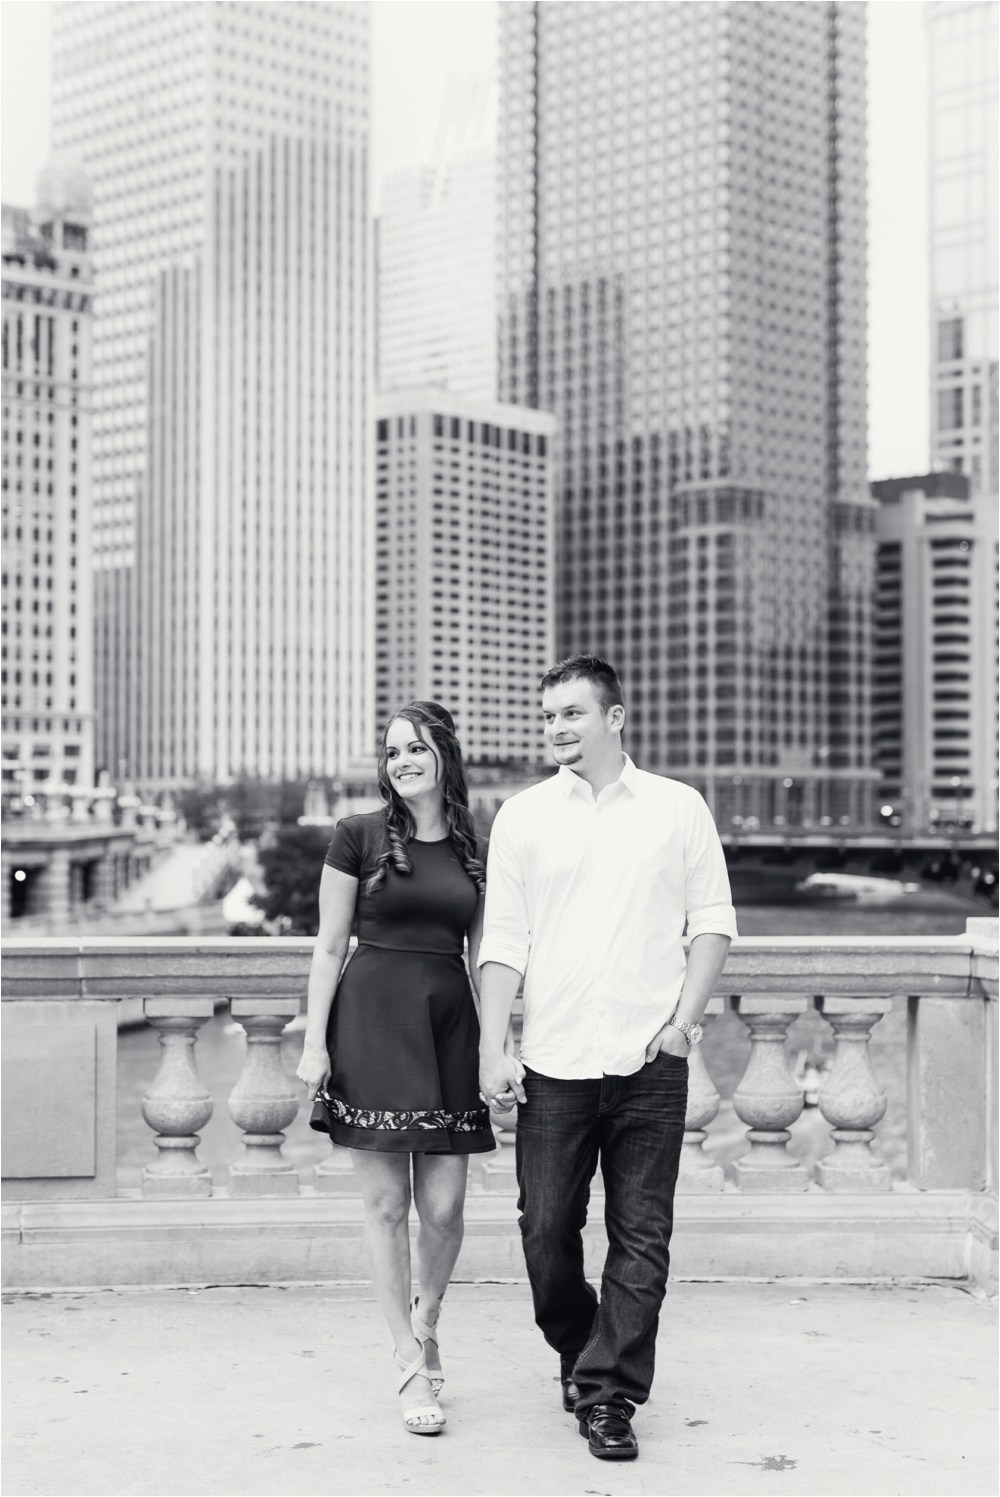 chicago-ilinois-michigna-ave-city-downtown-engagement-photo-12.jpg